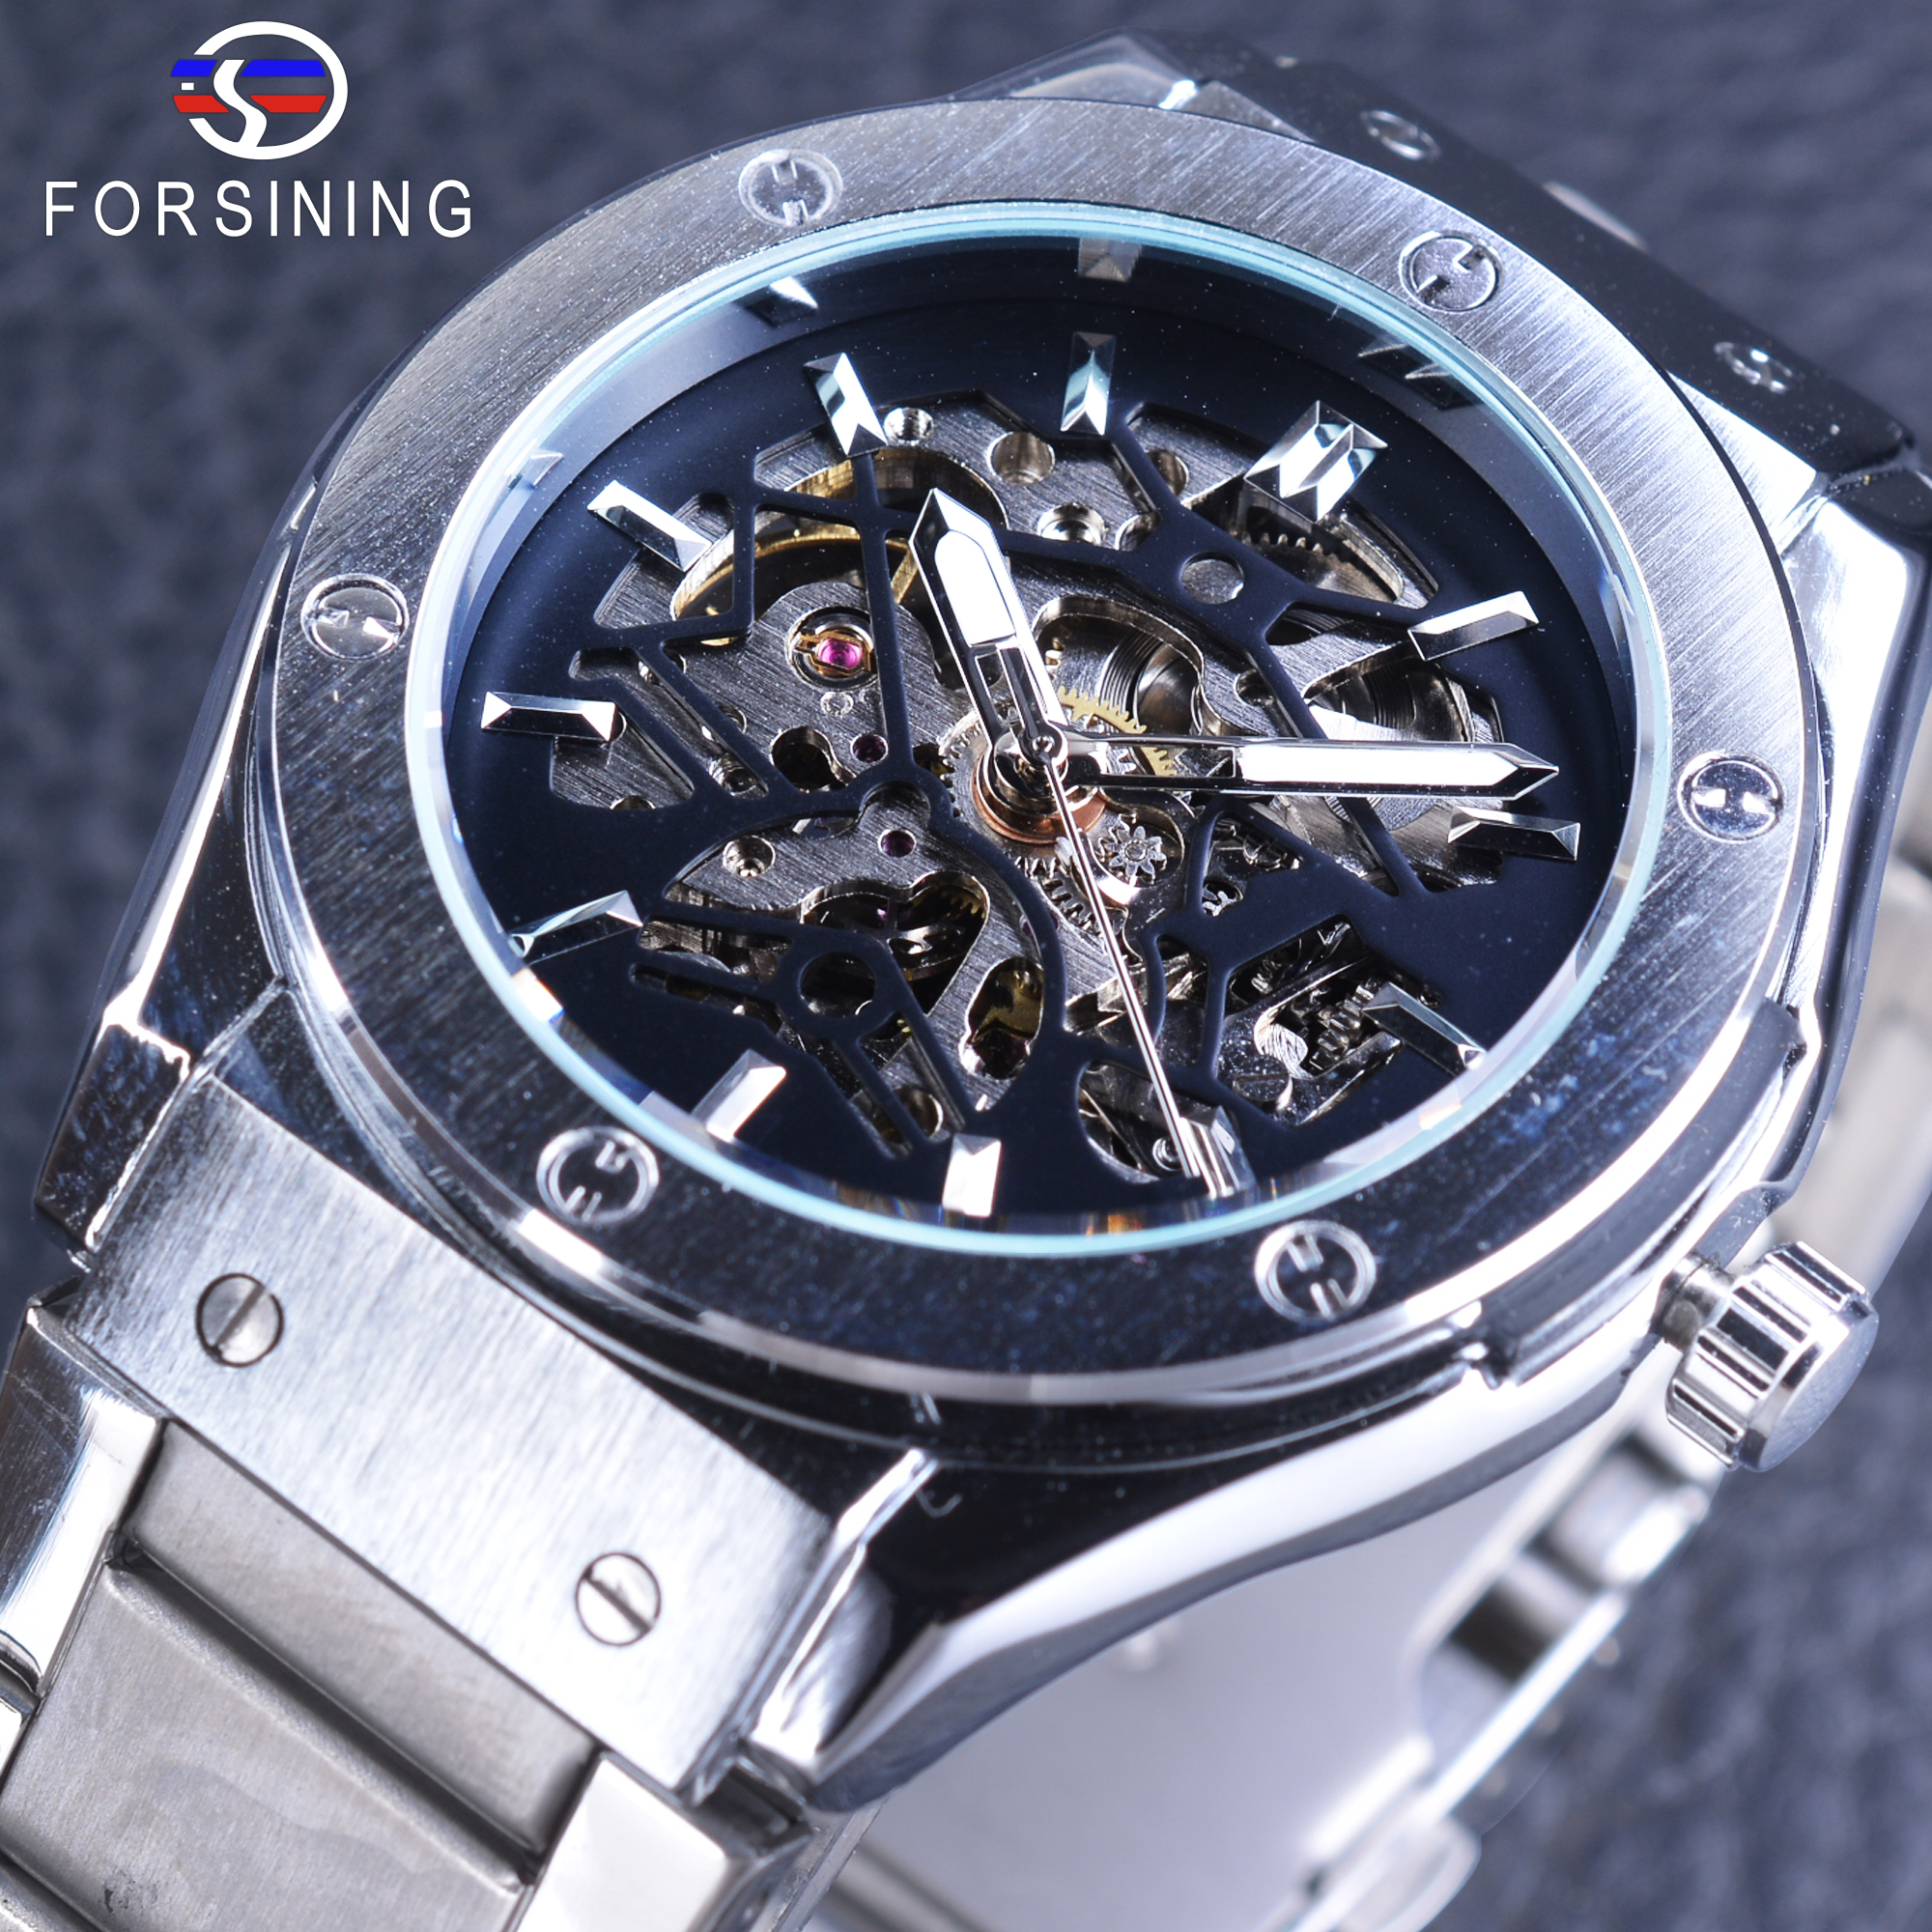 Forsining Steampunk Sport Watches Silver Stainless Steel Metal Bracelet Clasp Men's Mechanical Wristwatch Skeleton Watches Clock forsining golden stainless steel sport watch steampunk men watch luminous openwork mechanical watches folding clasp with safety